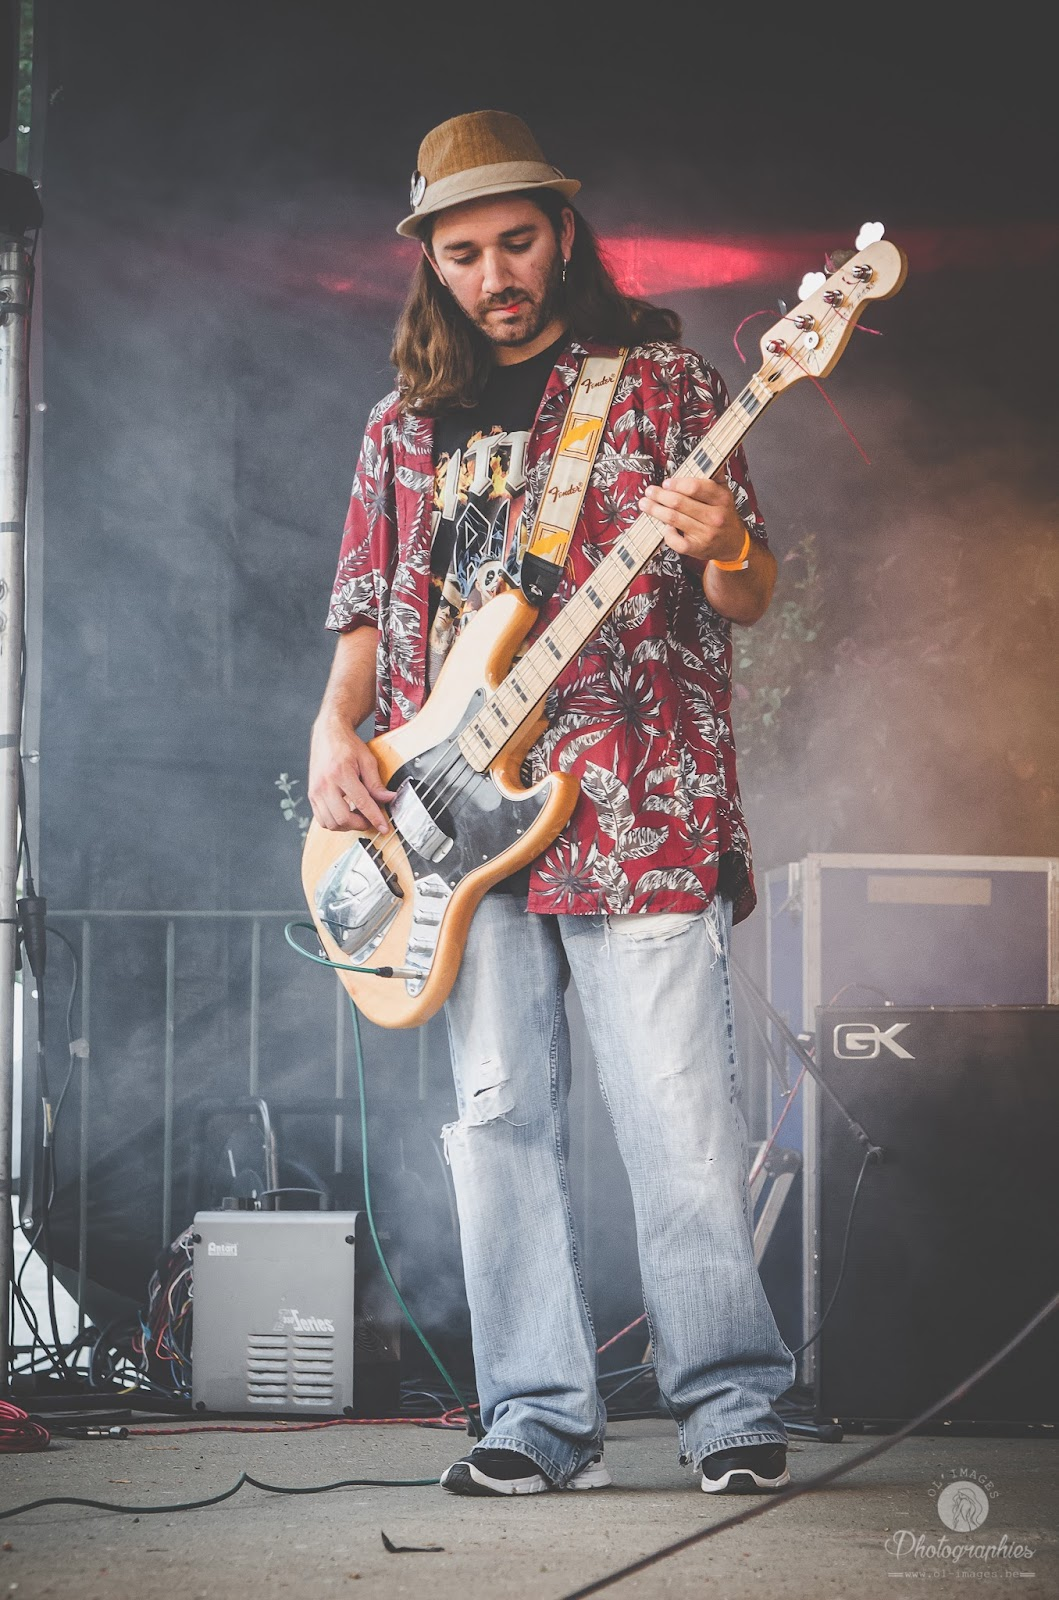 VillePomRock2017_26082017_OL-Images.be--58.jpg